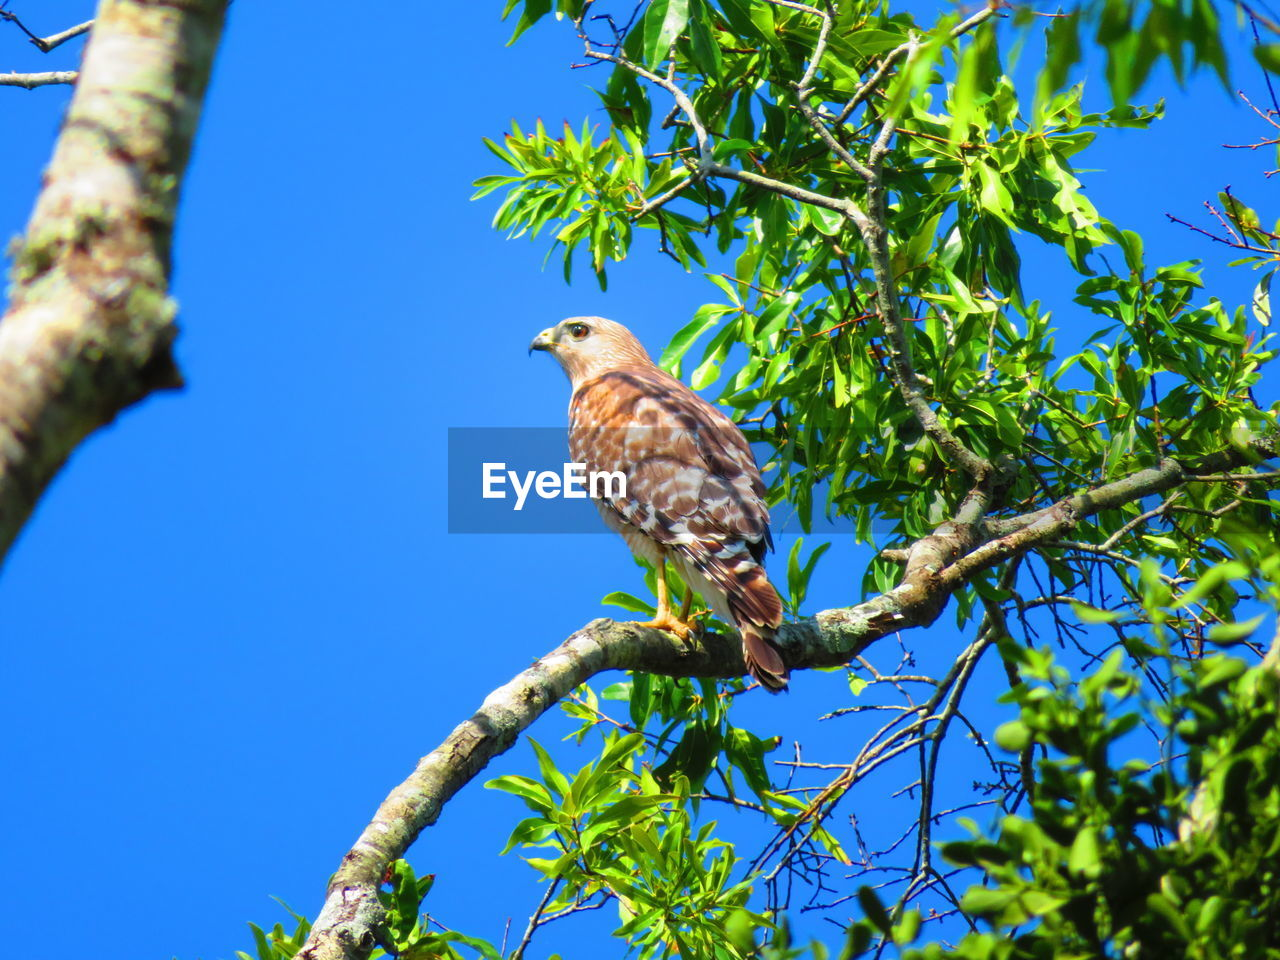 tree, plant, bird, animal themes, animal, vertebrate, animals in the wild, animal wildlife, perching, one animal, branch, low angle view, blue, nature, sky, no people, leaf, plant part, clear sky, day, eagle